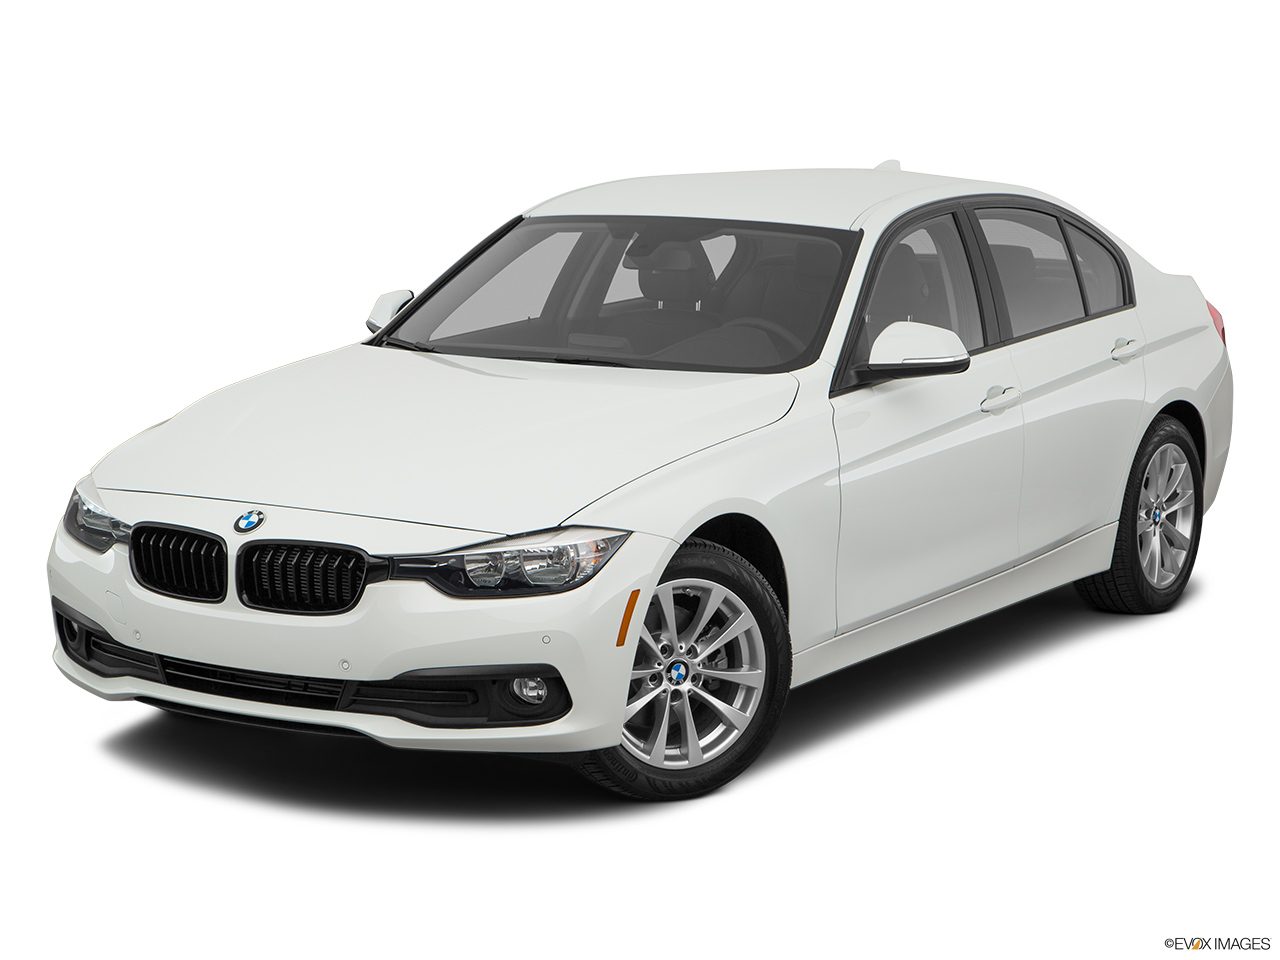 2018 bmw 3 series prices in uae, gulf specs & reviews for dubai